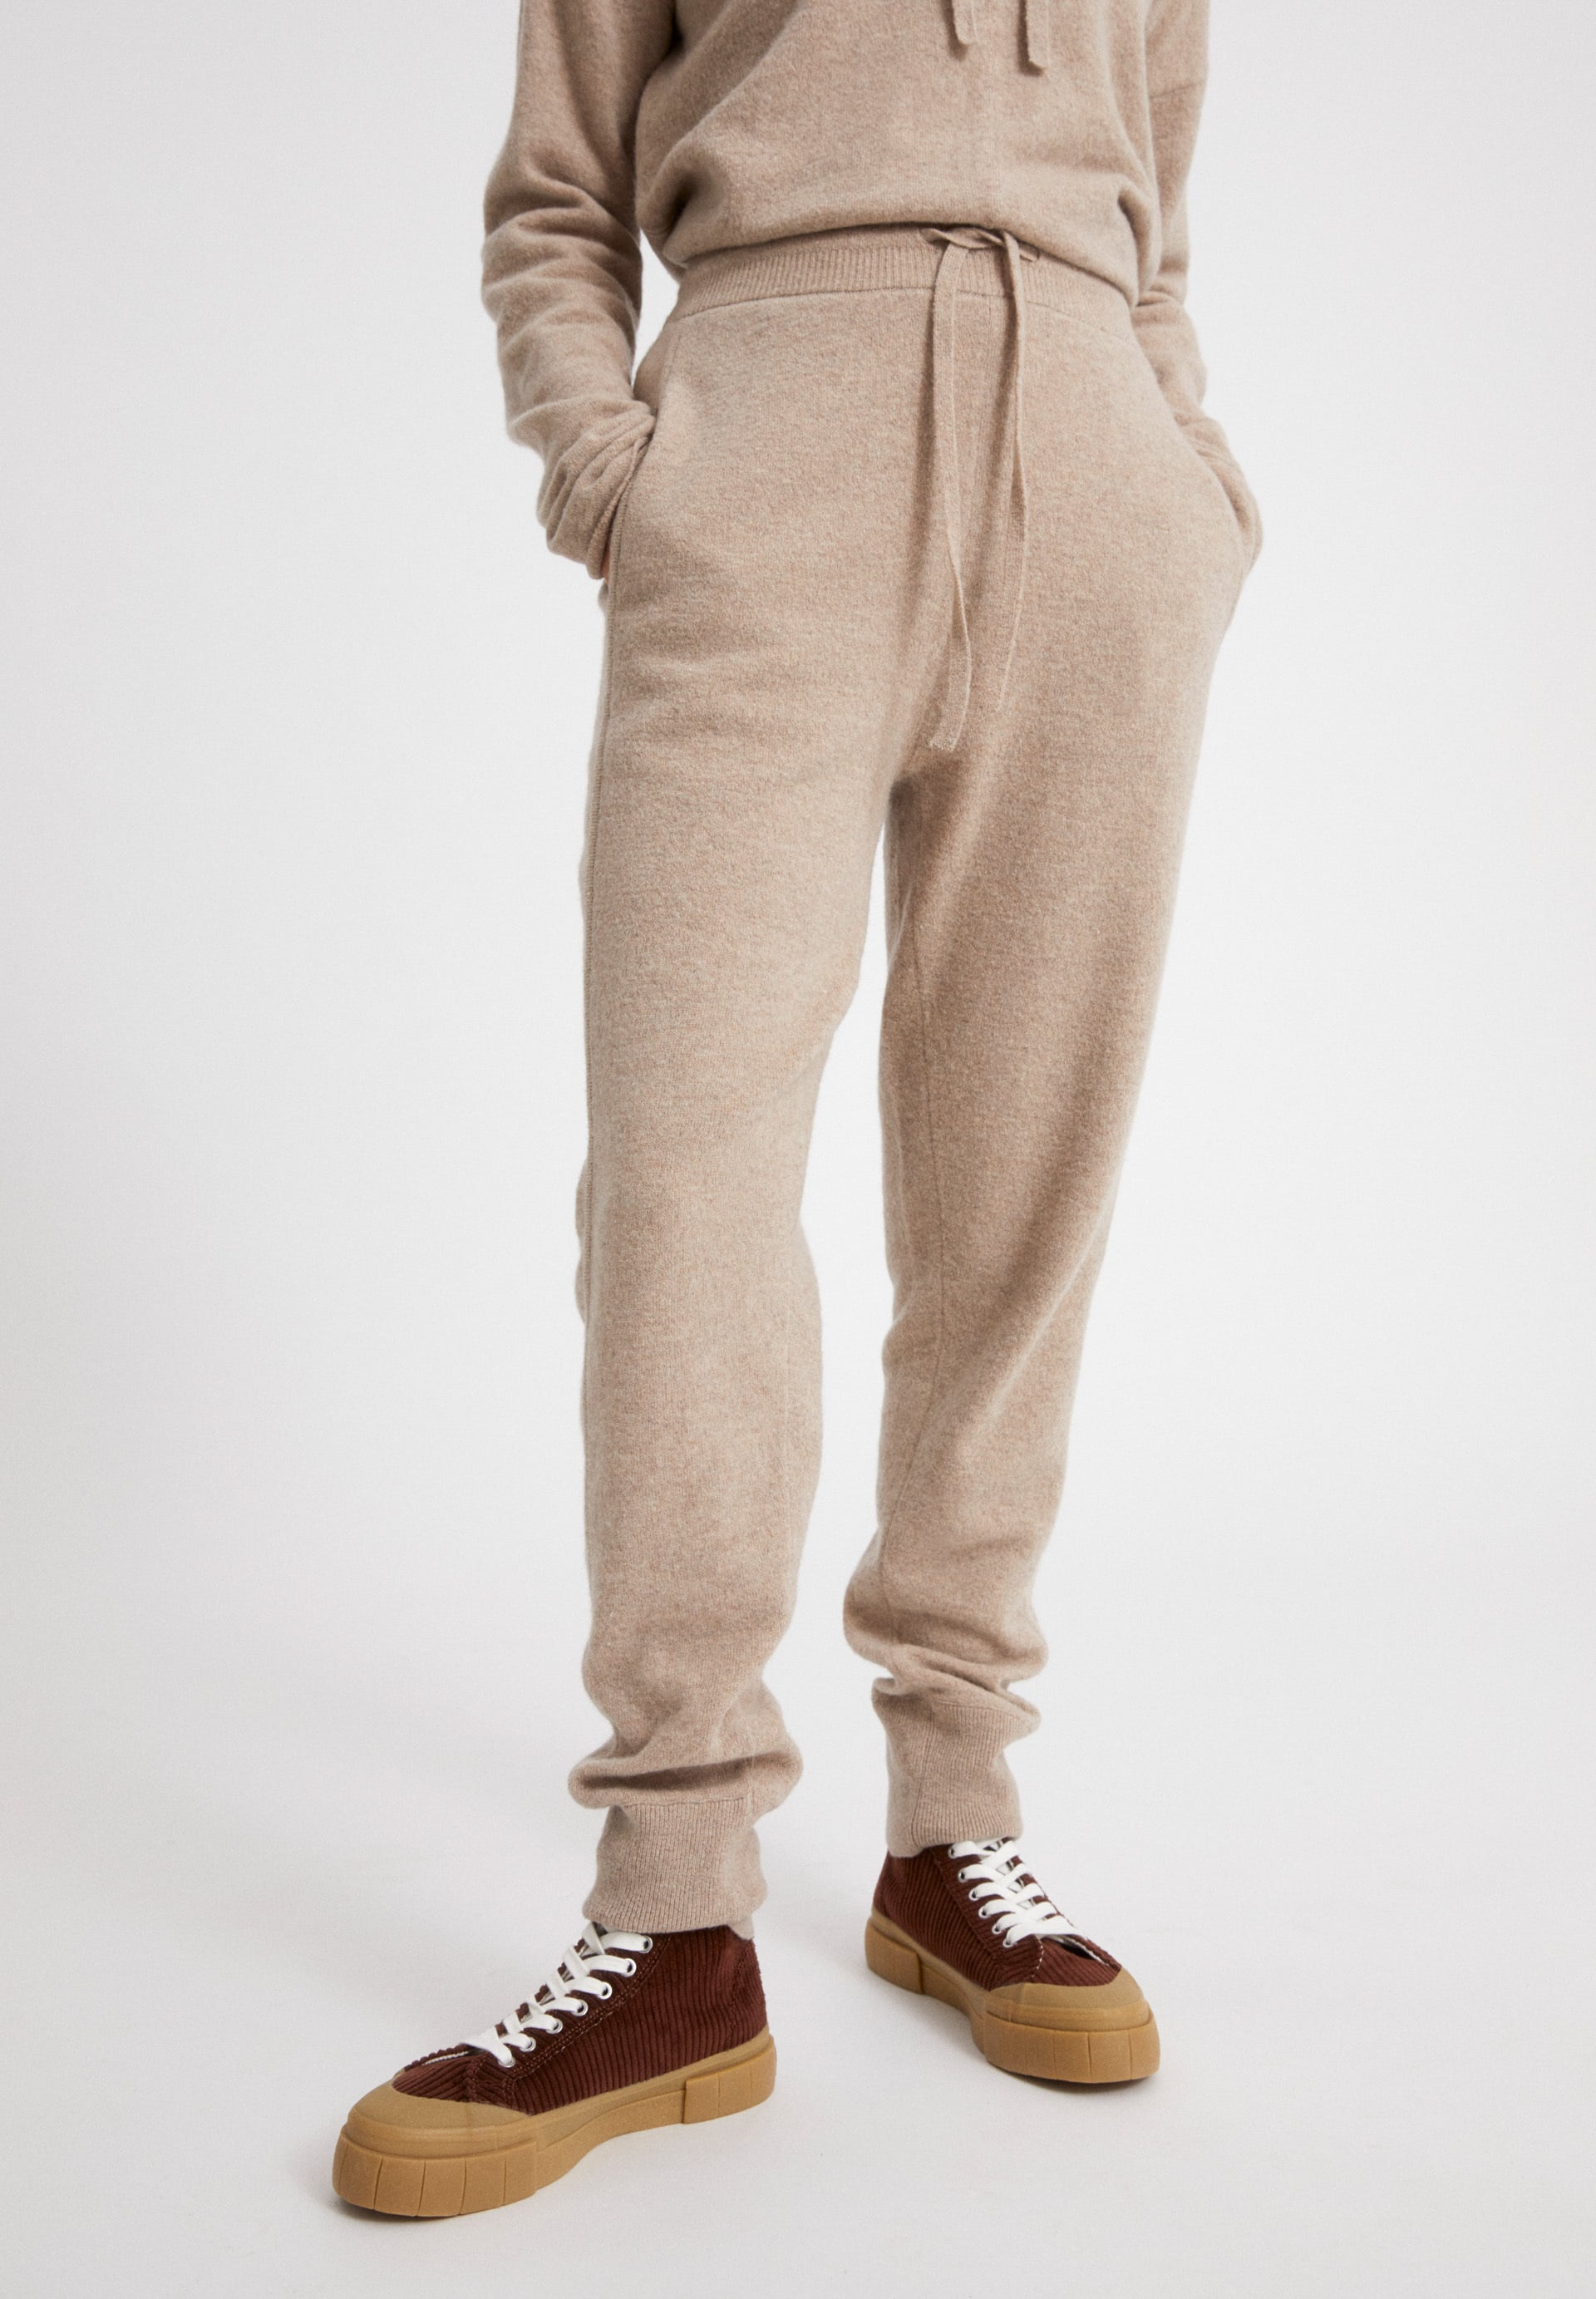 FAAY RECYCLED WOOL Knit Pants made of Organic Wool Mix